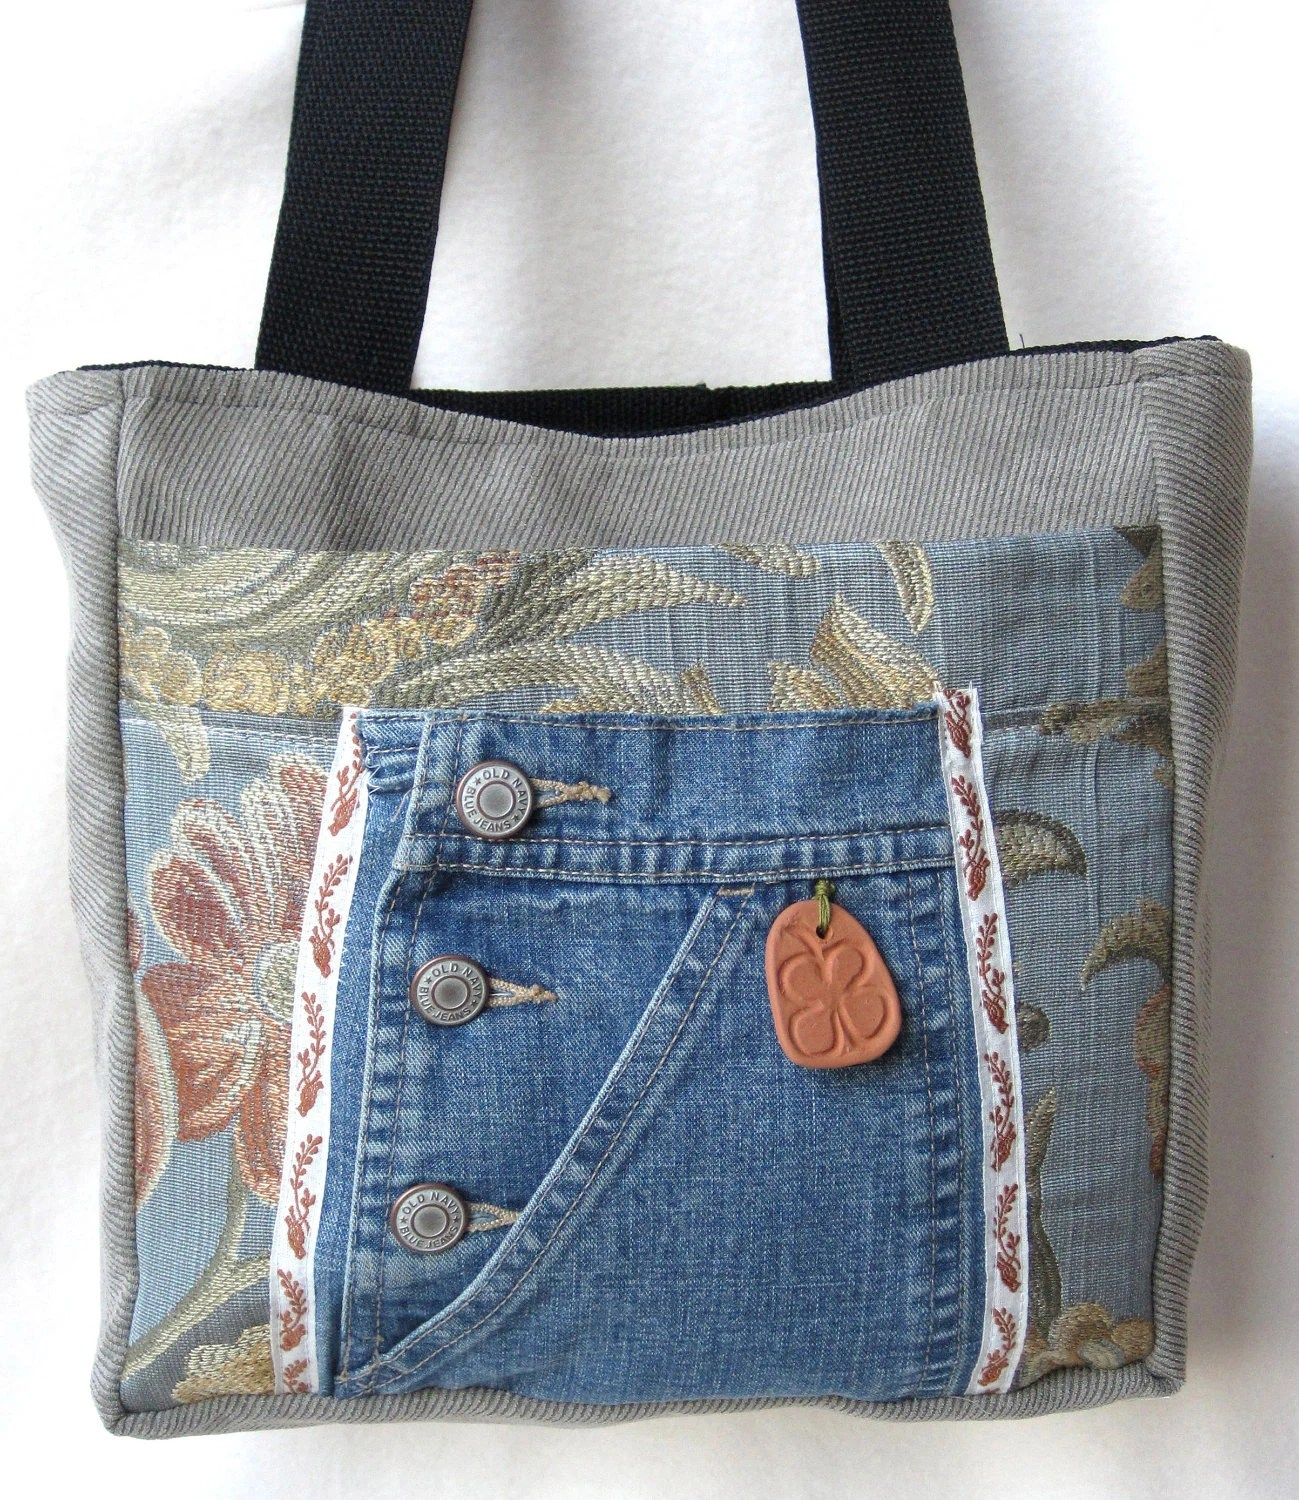 SALE Tote Bag Blue Floral Denim Mocha Organizer Terra Cotta Shamrock Embellishment